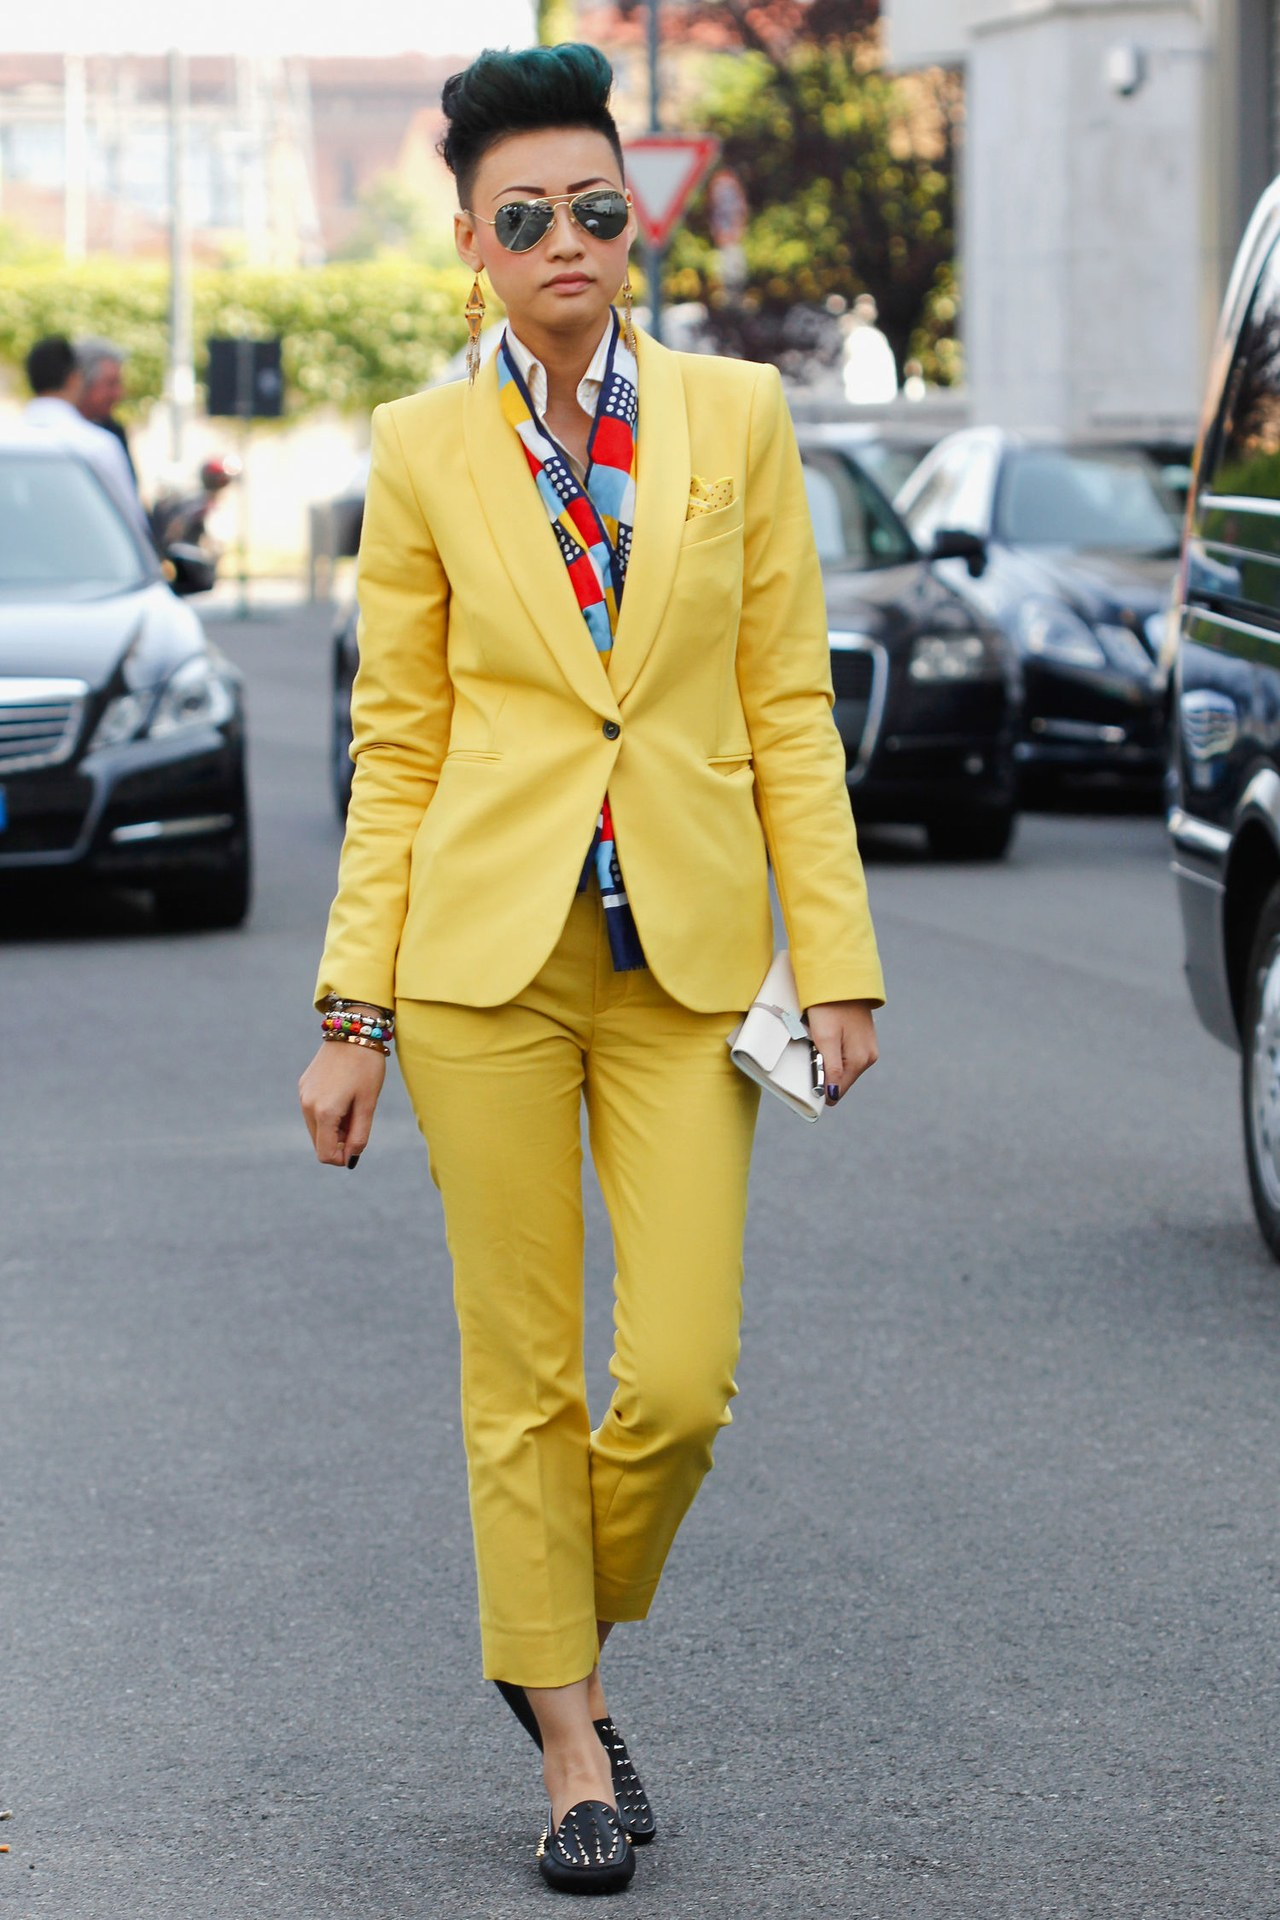 fashion-2013-07-esther-quek-street-style-yellow-suit-main